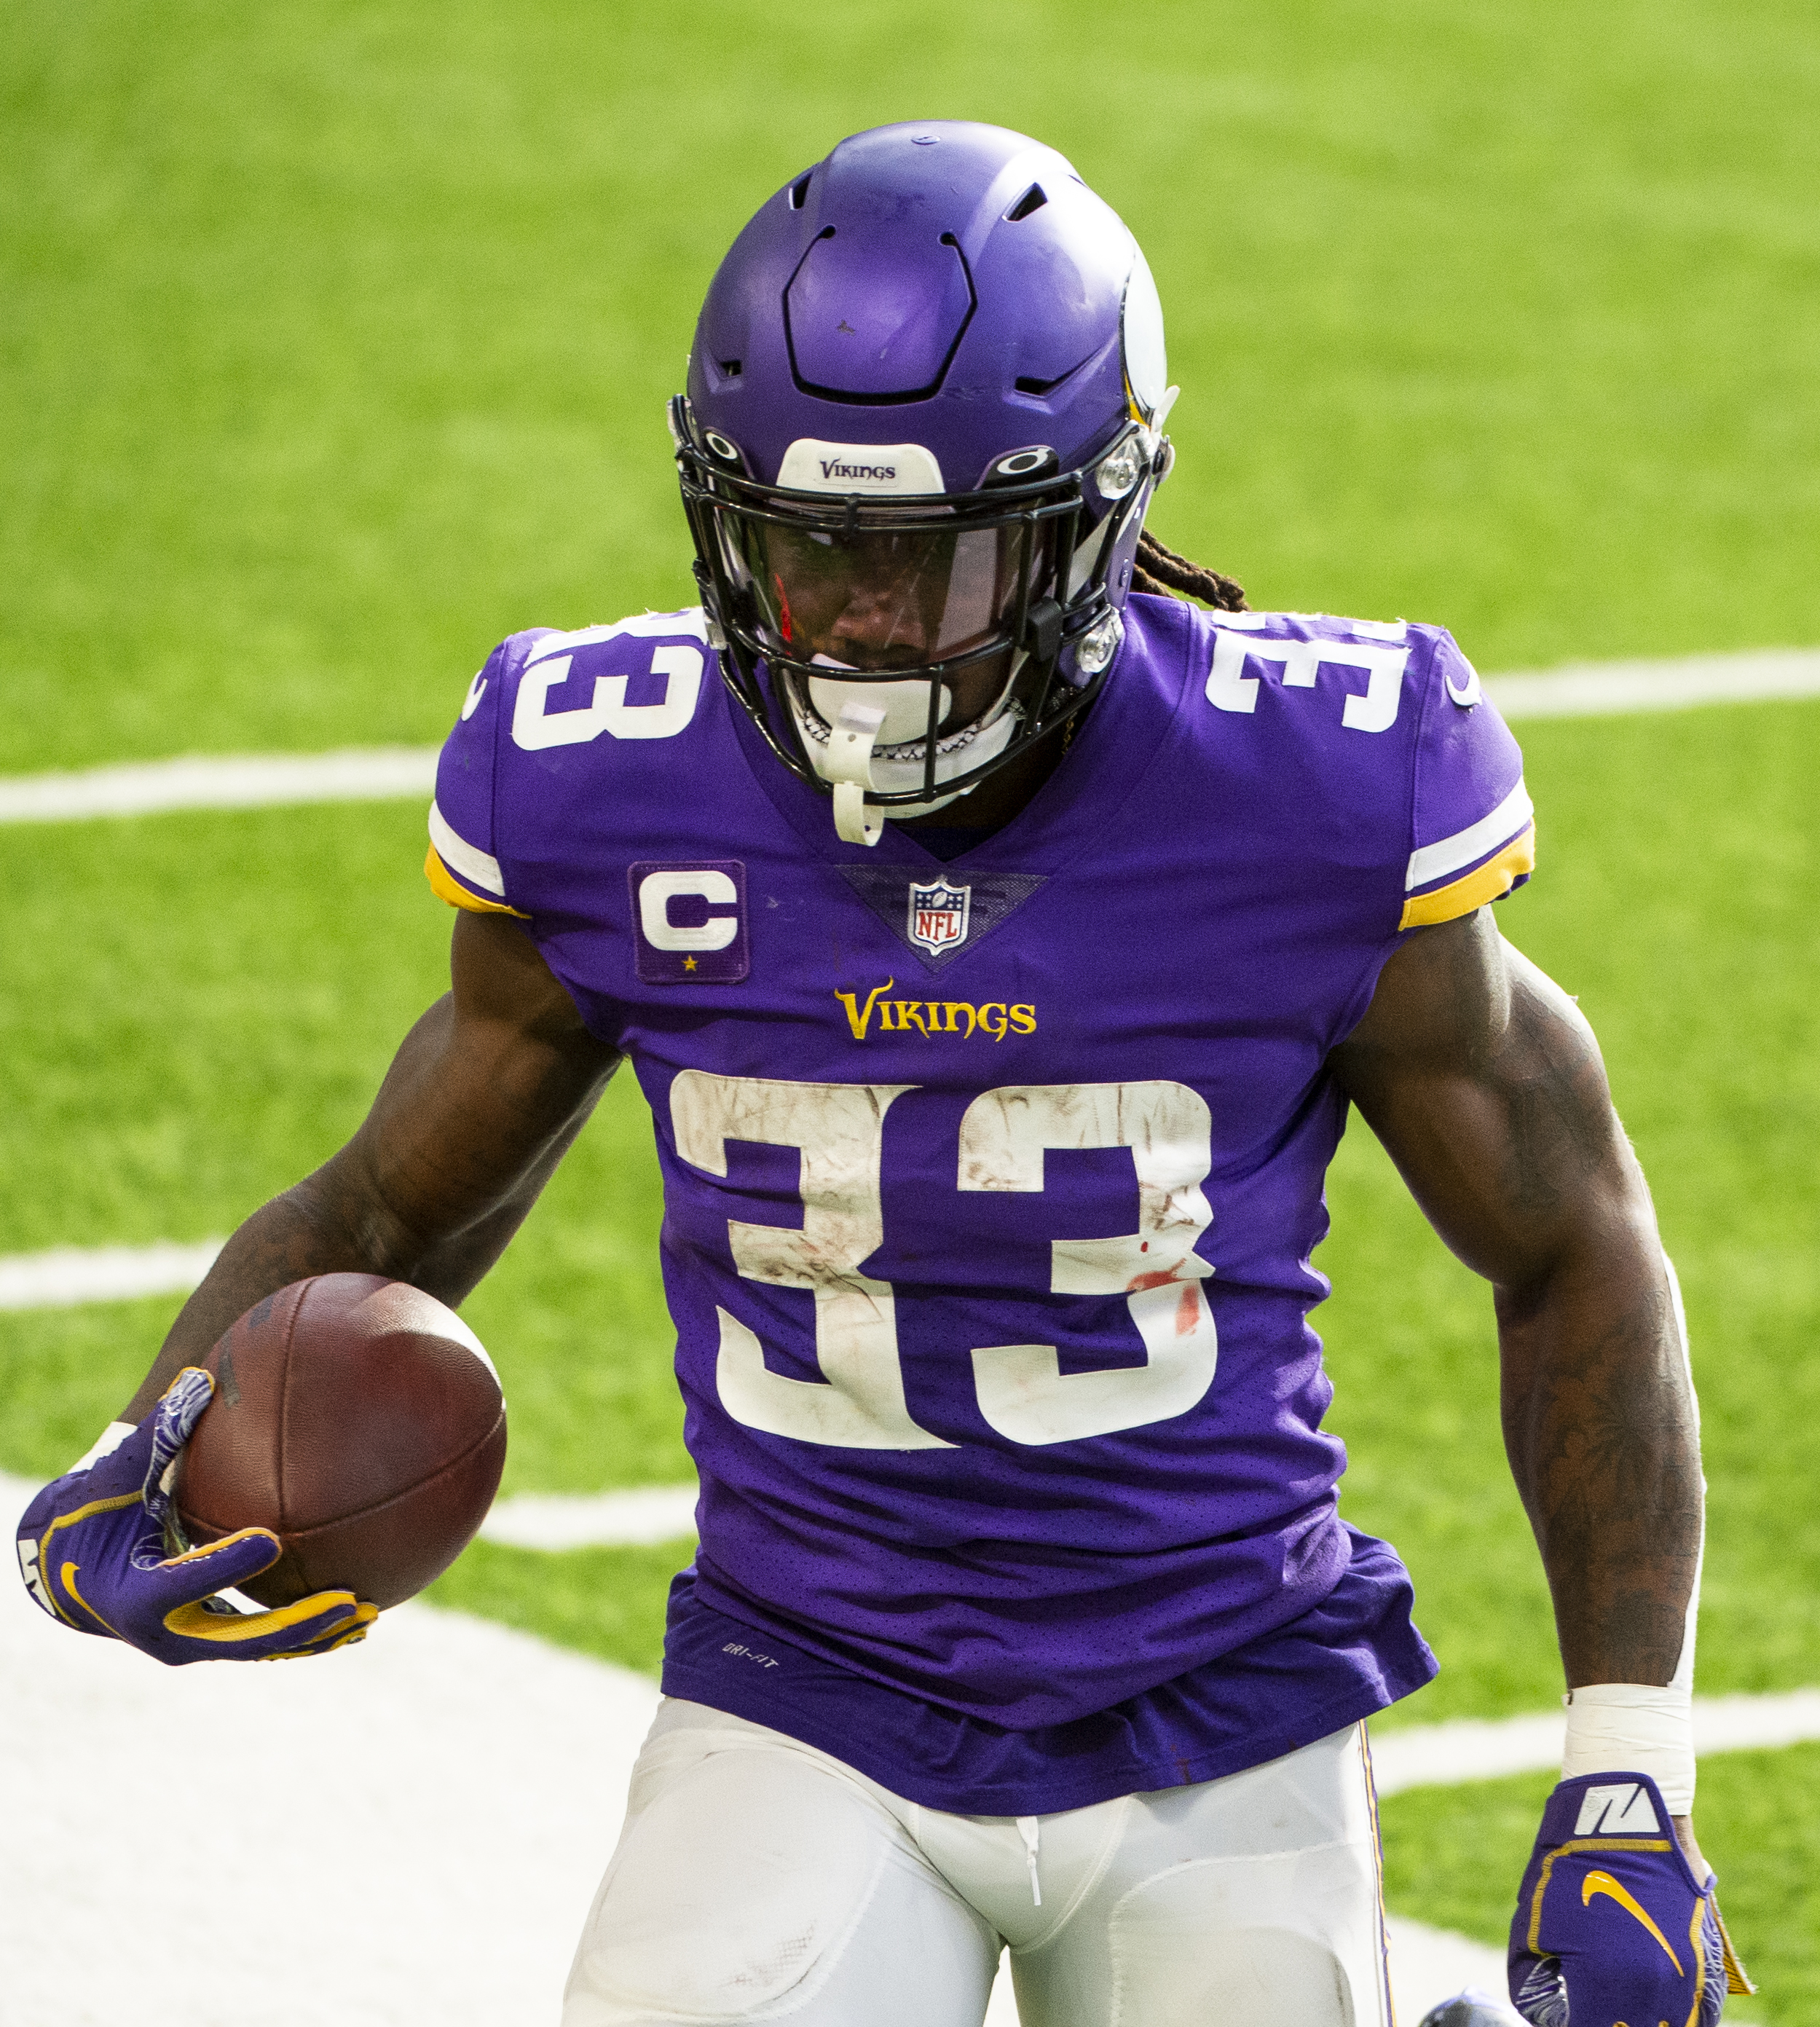 Dalvin Cook #33 of the Minnesota Vikings runs with the ball in the second quarter of the game against the Chicago Bears at U.S. Bank Stadium on December 20, 2020 in Minneapolis, Minnesota.